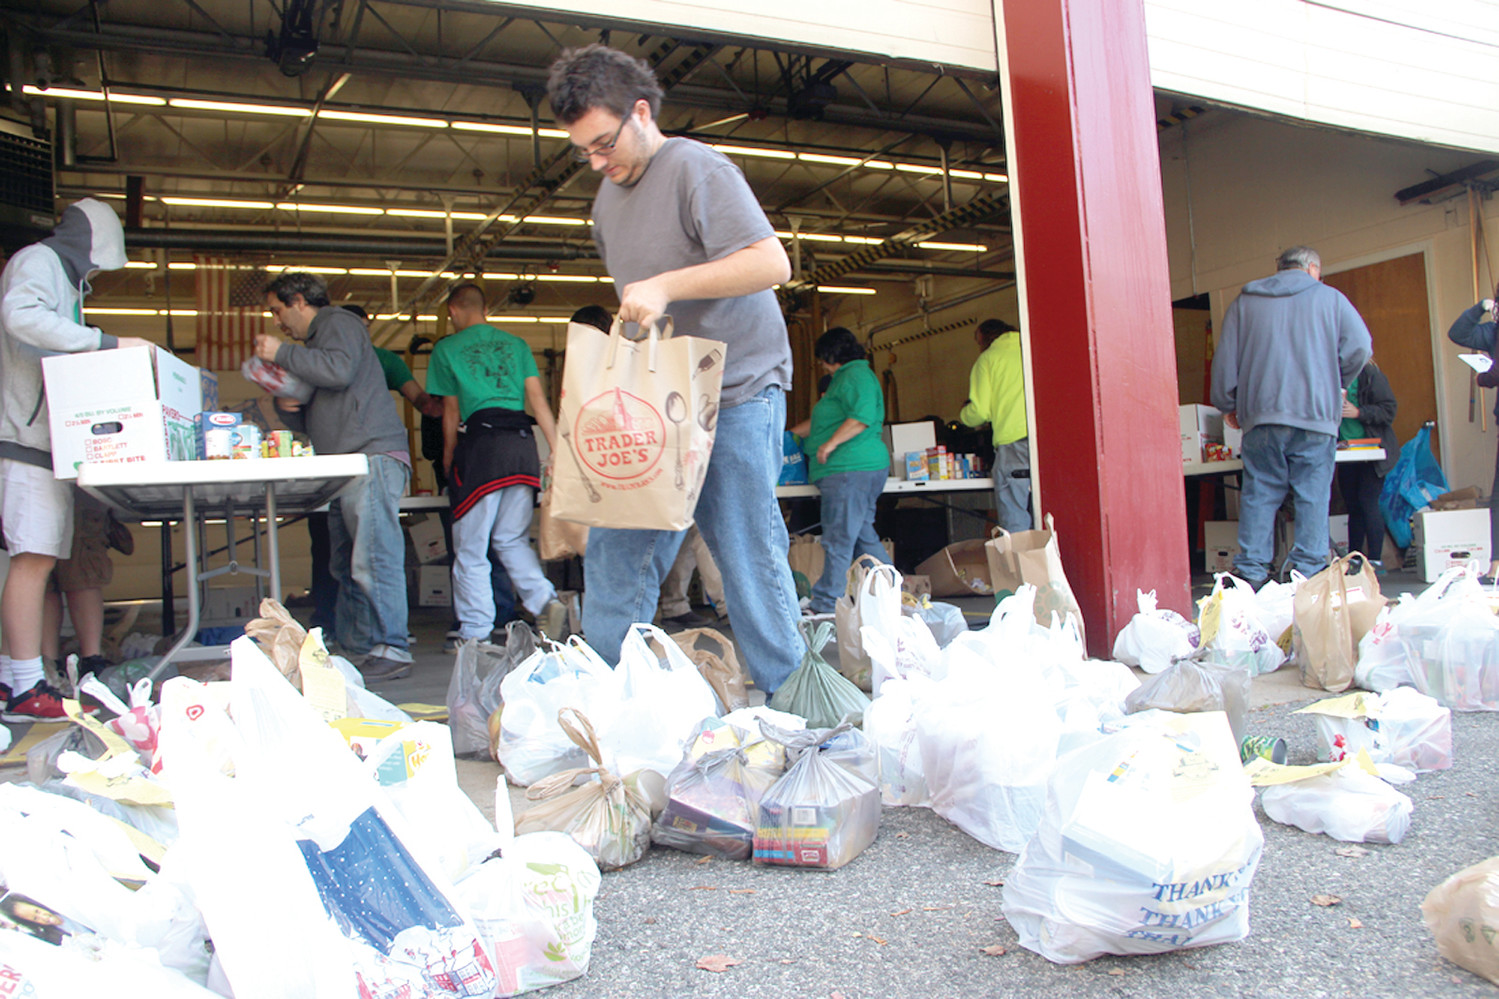 A BUSY PLACE: Scouts from Warwick Troop 63, their parents and volunteers sorted and boxed food donations at the fire station serving as the collection point for Conimicut, Bayside, Warwick Neck and other close by neighborhood.